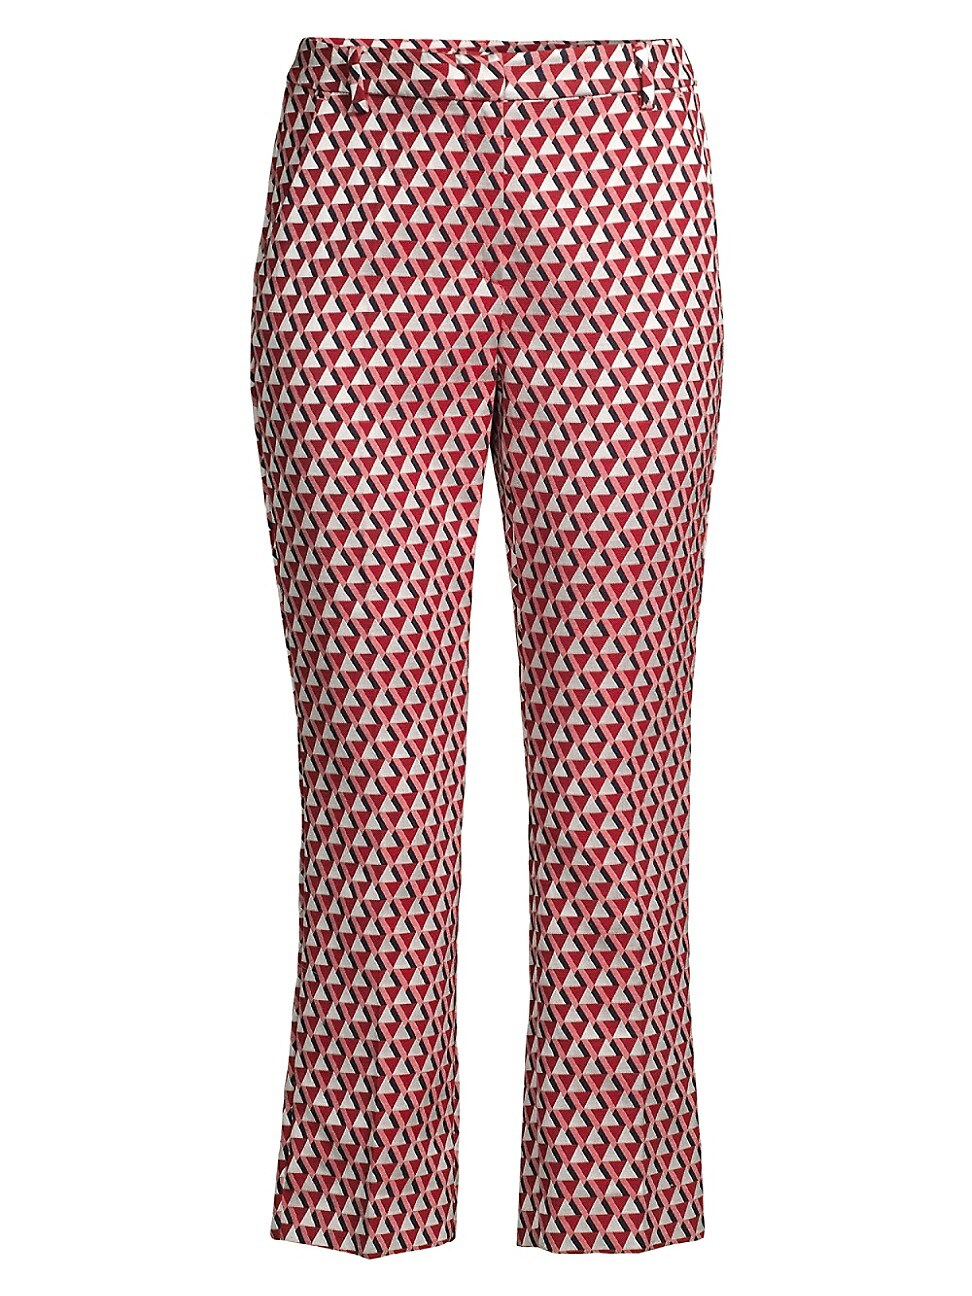 WEEKEND MAX MARA WOMEN'S CAPALE GEOMETRIC STRAIGHT-LEG PANTS